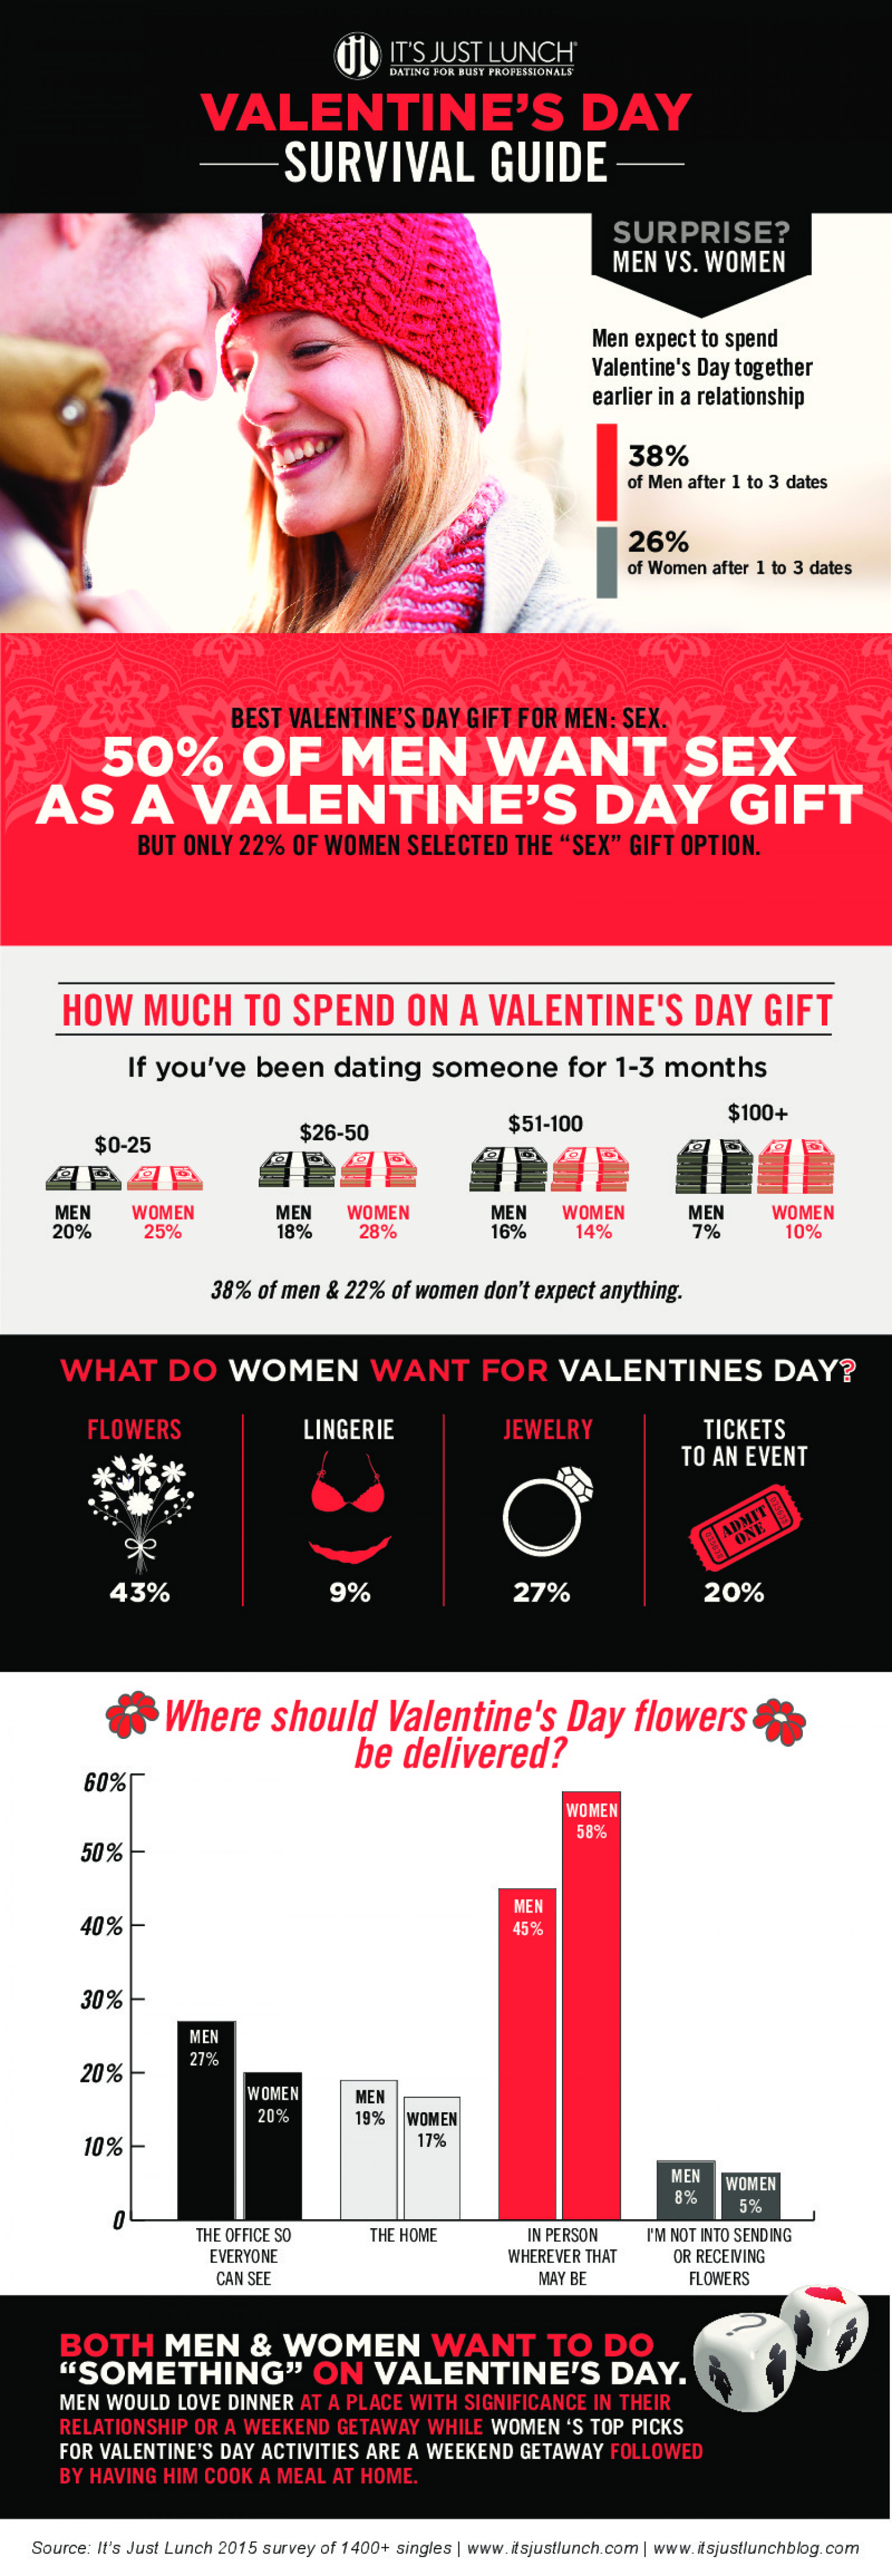 Valentine's Day Survival Guide by It's Just Lunch Infographic